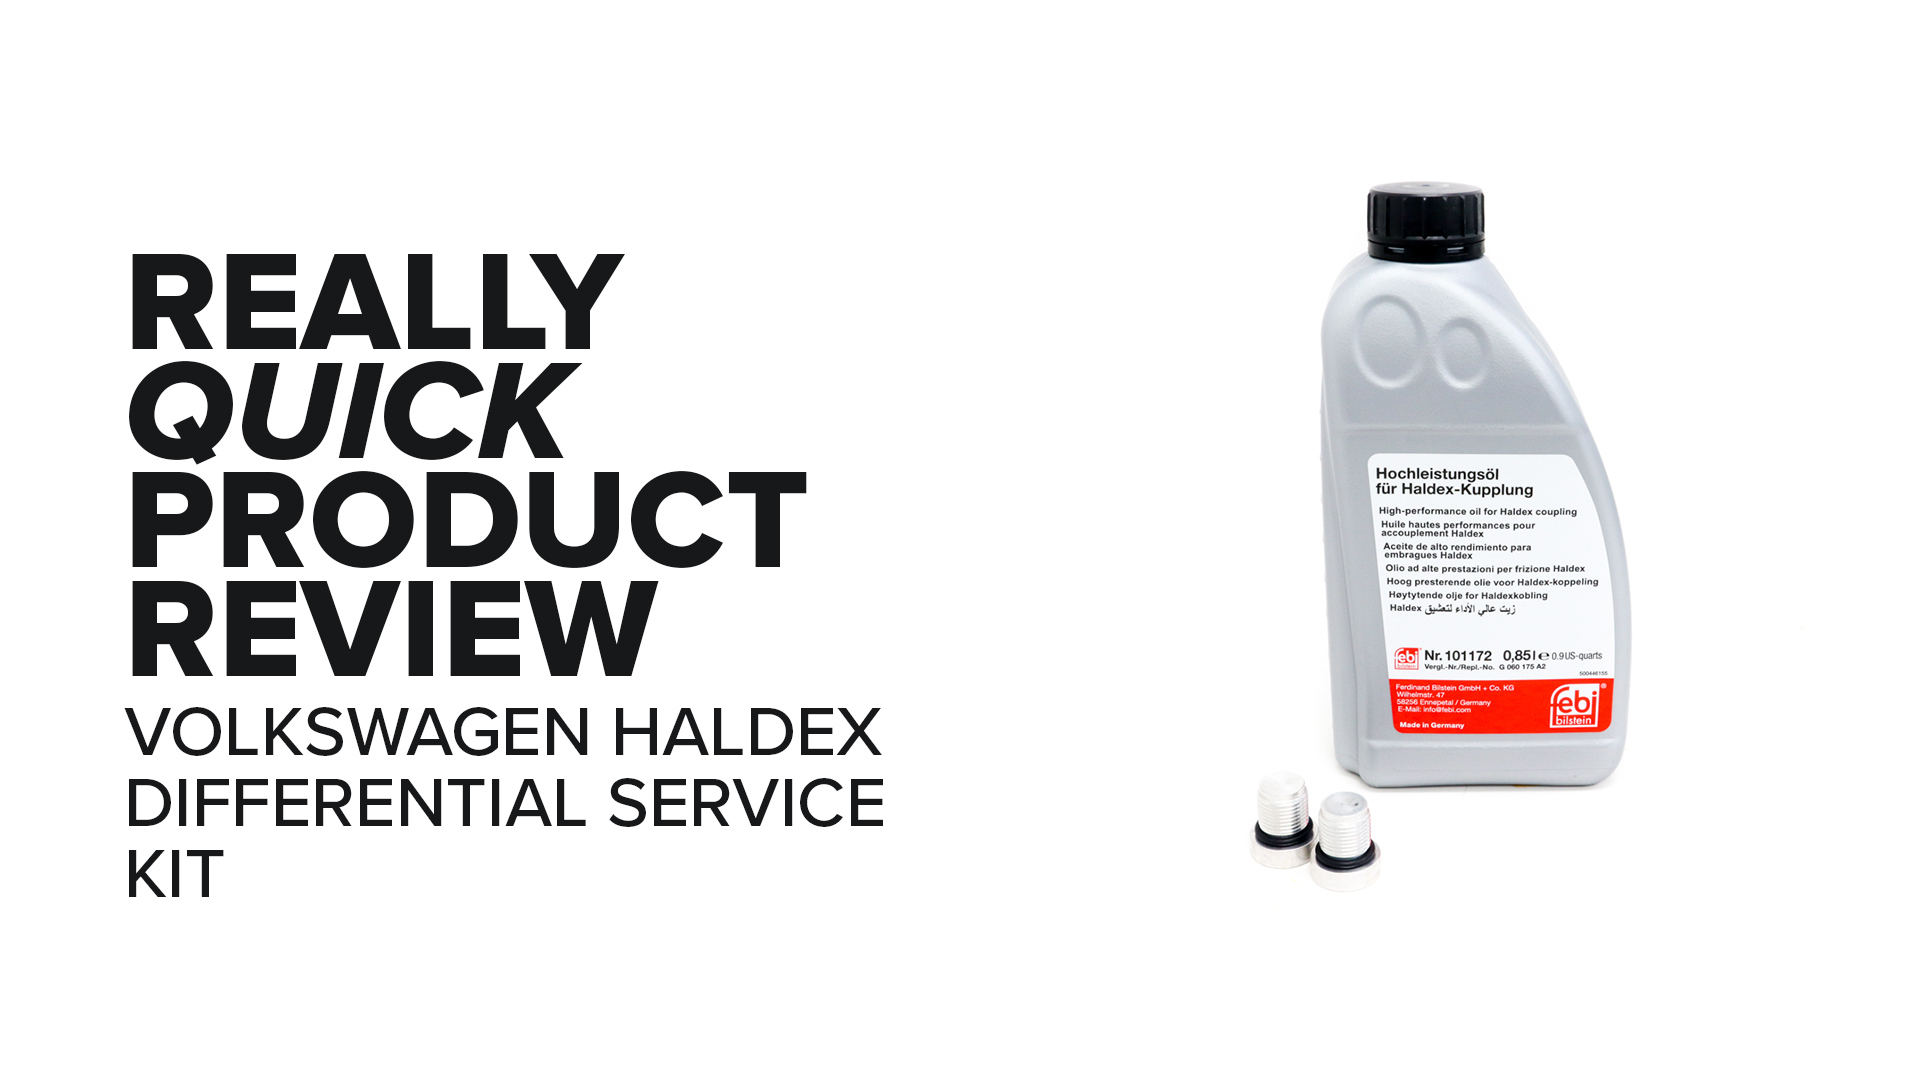 MK7 Volkswagen GTI VAQ Haldex Differential Service Kit - Symptoms And Product Review